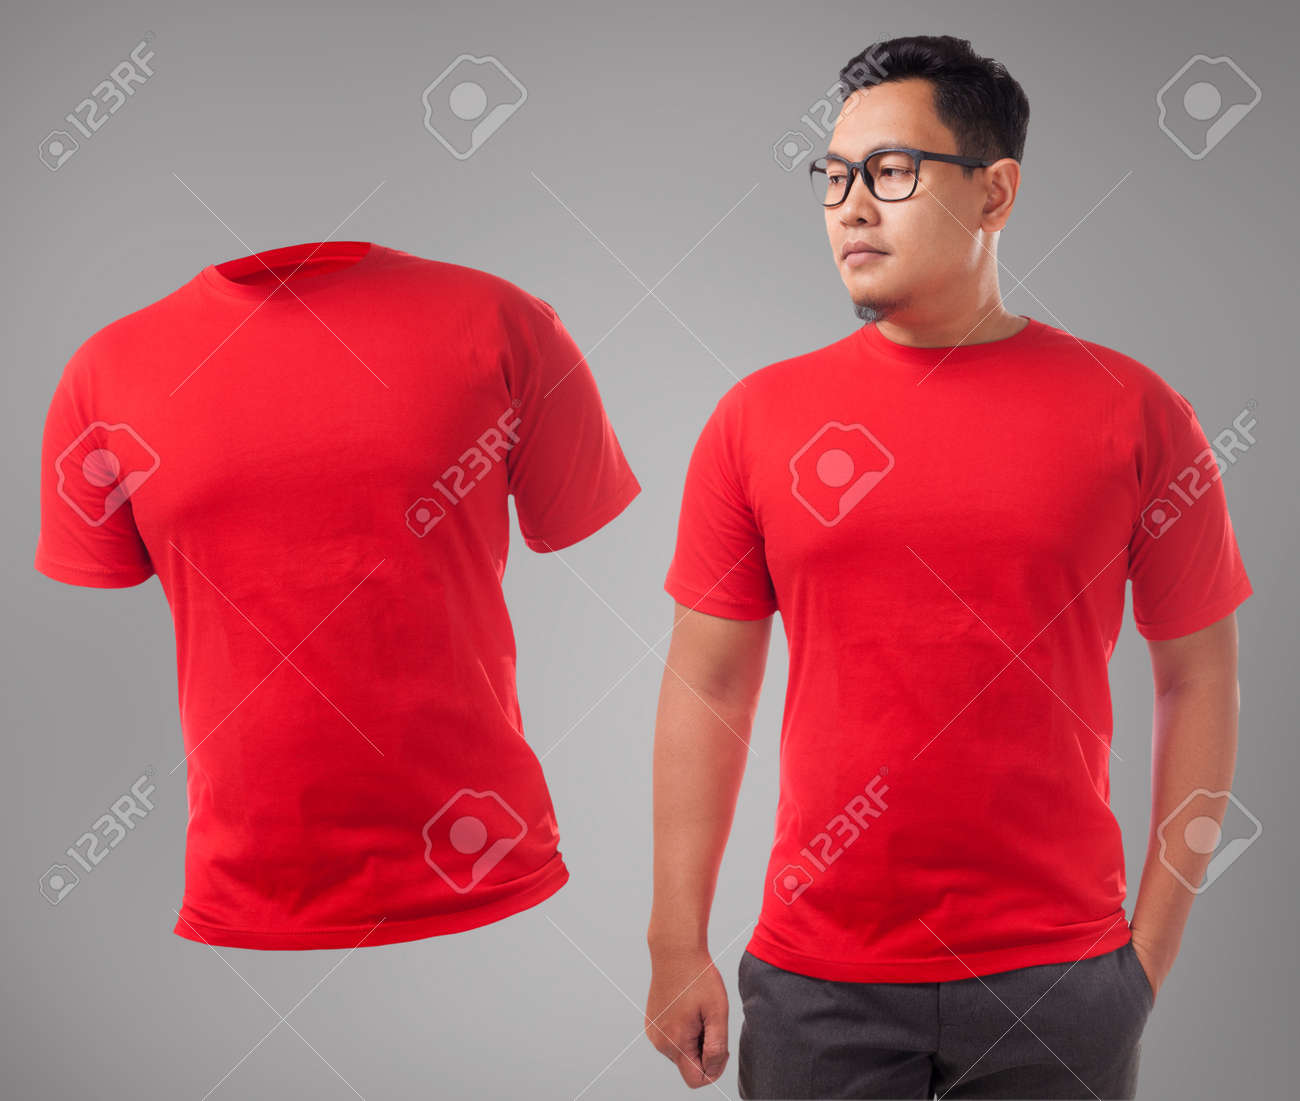 Red T Shirt Mock Up Front View Isolated Male Model Wear Plain